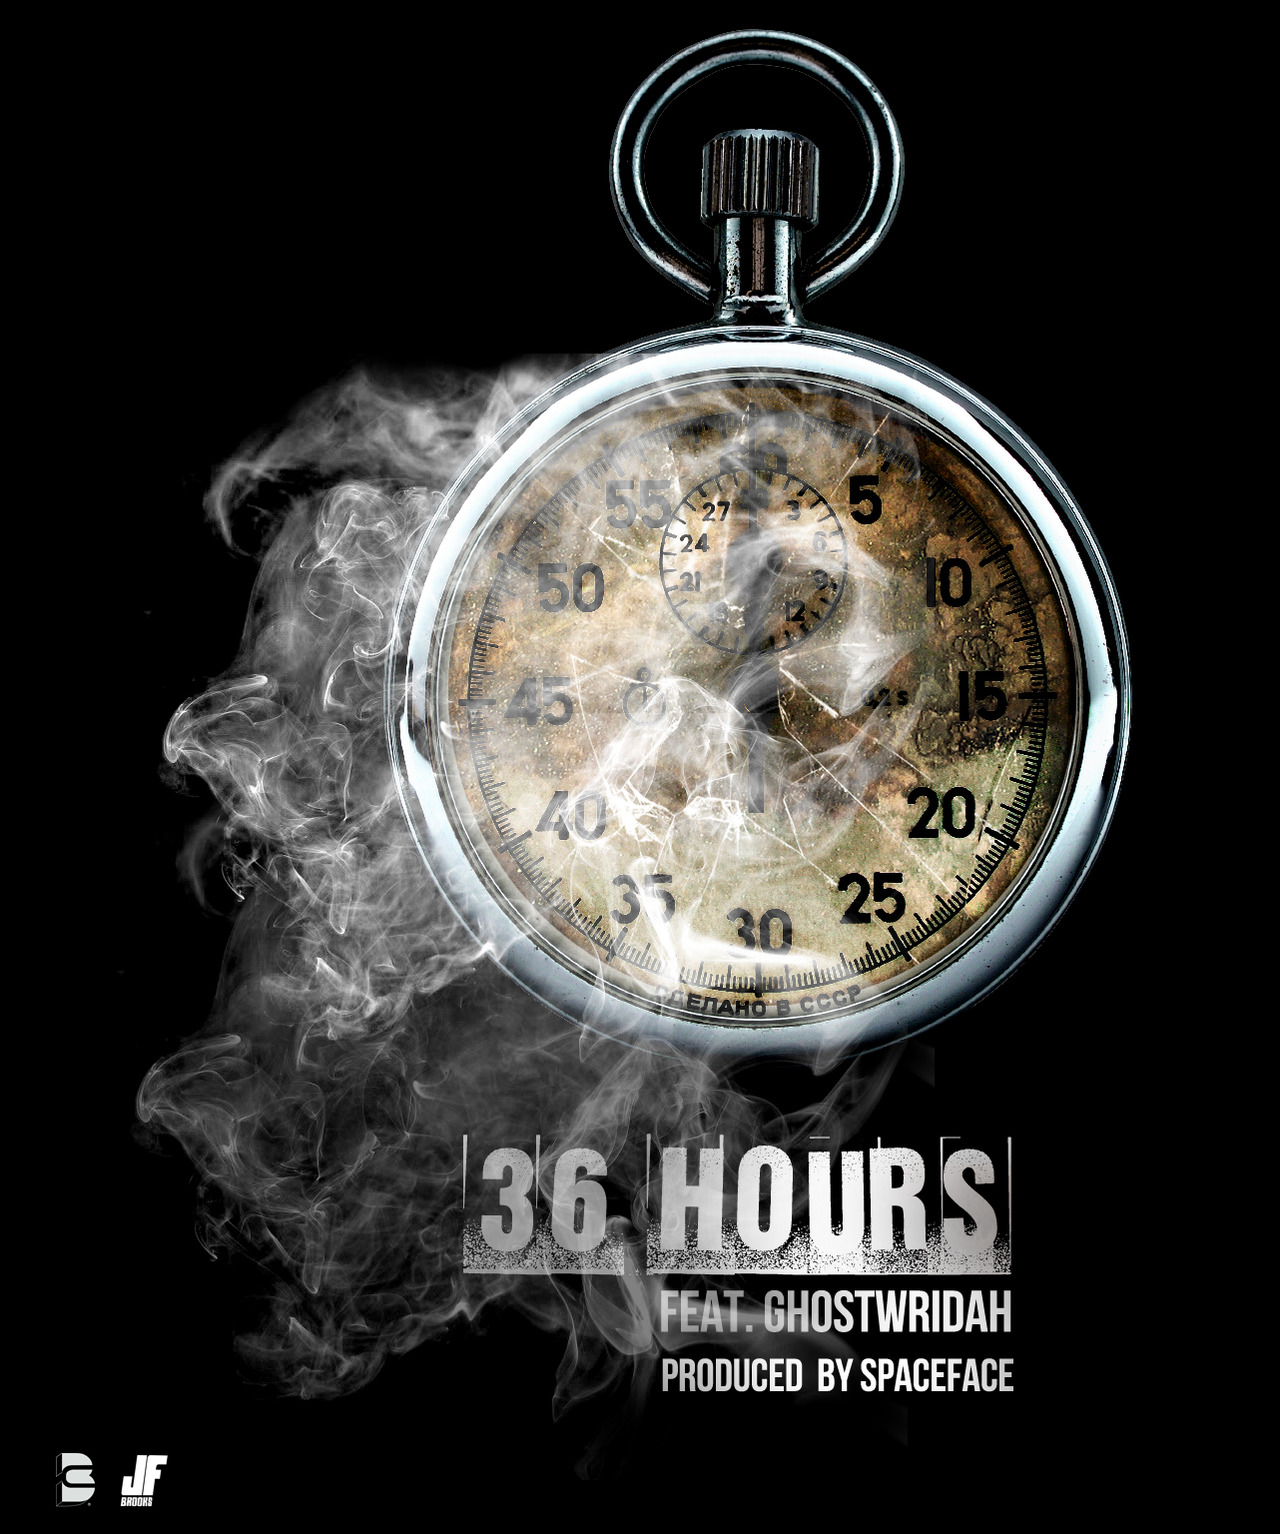 """jerzyfrombrooklyn: """"36 Hours"""" Feat. @ghostwridah Produced by. @olaspaceface (SpaceFace) First Single off my upcoming Project. """"Escape From Purgatory"""" #ARTWORK #BiGCiTYBiGCiTY #BiGCiTY2X @JF_BROOKS first single airs Monday, January 14th!!! Get ready!!!"""